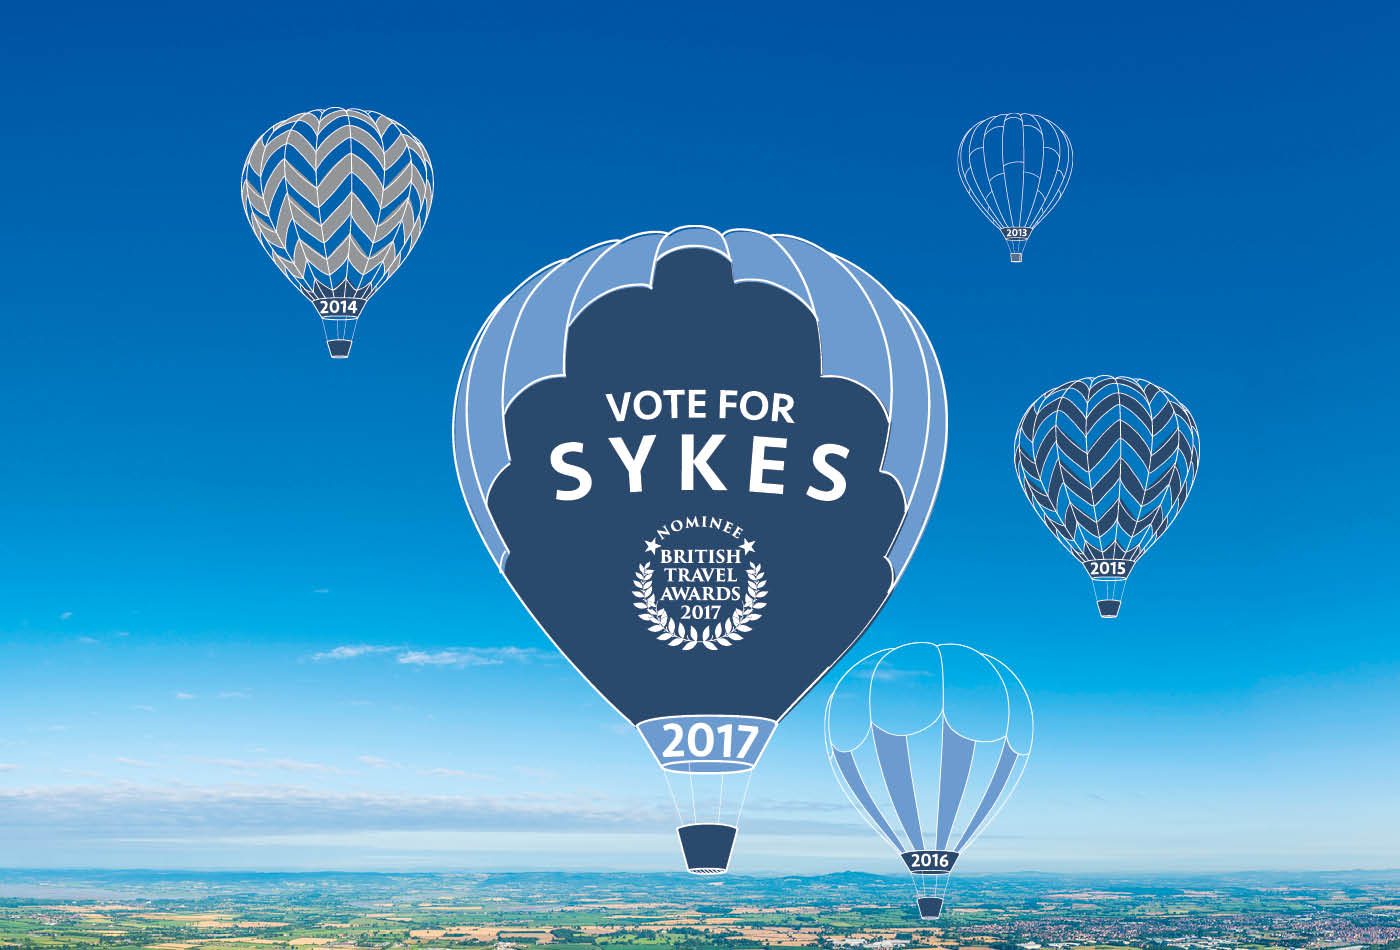 British Travel Awards 2017 - Vote for Sykes Cottages